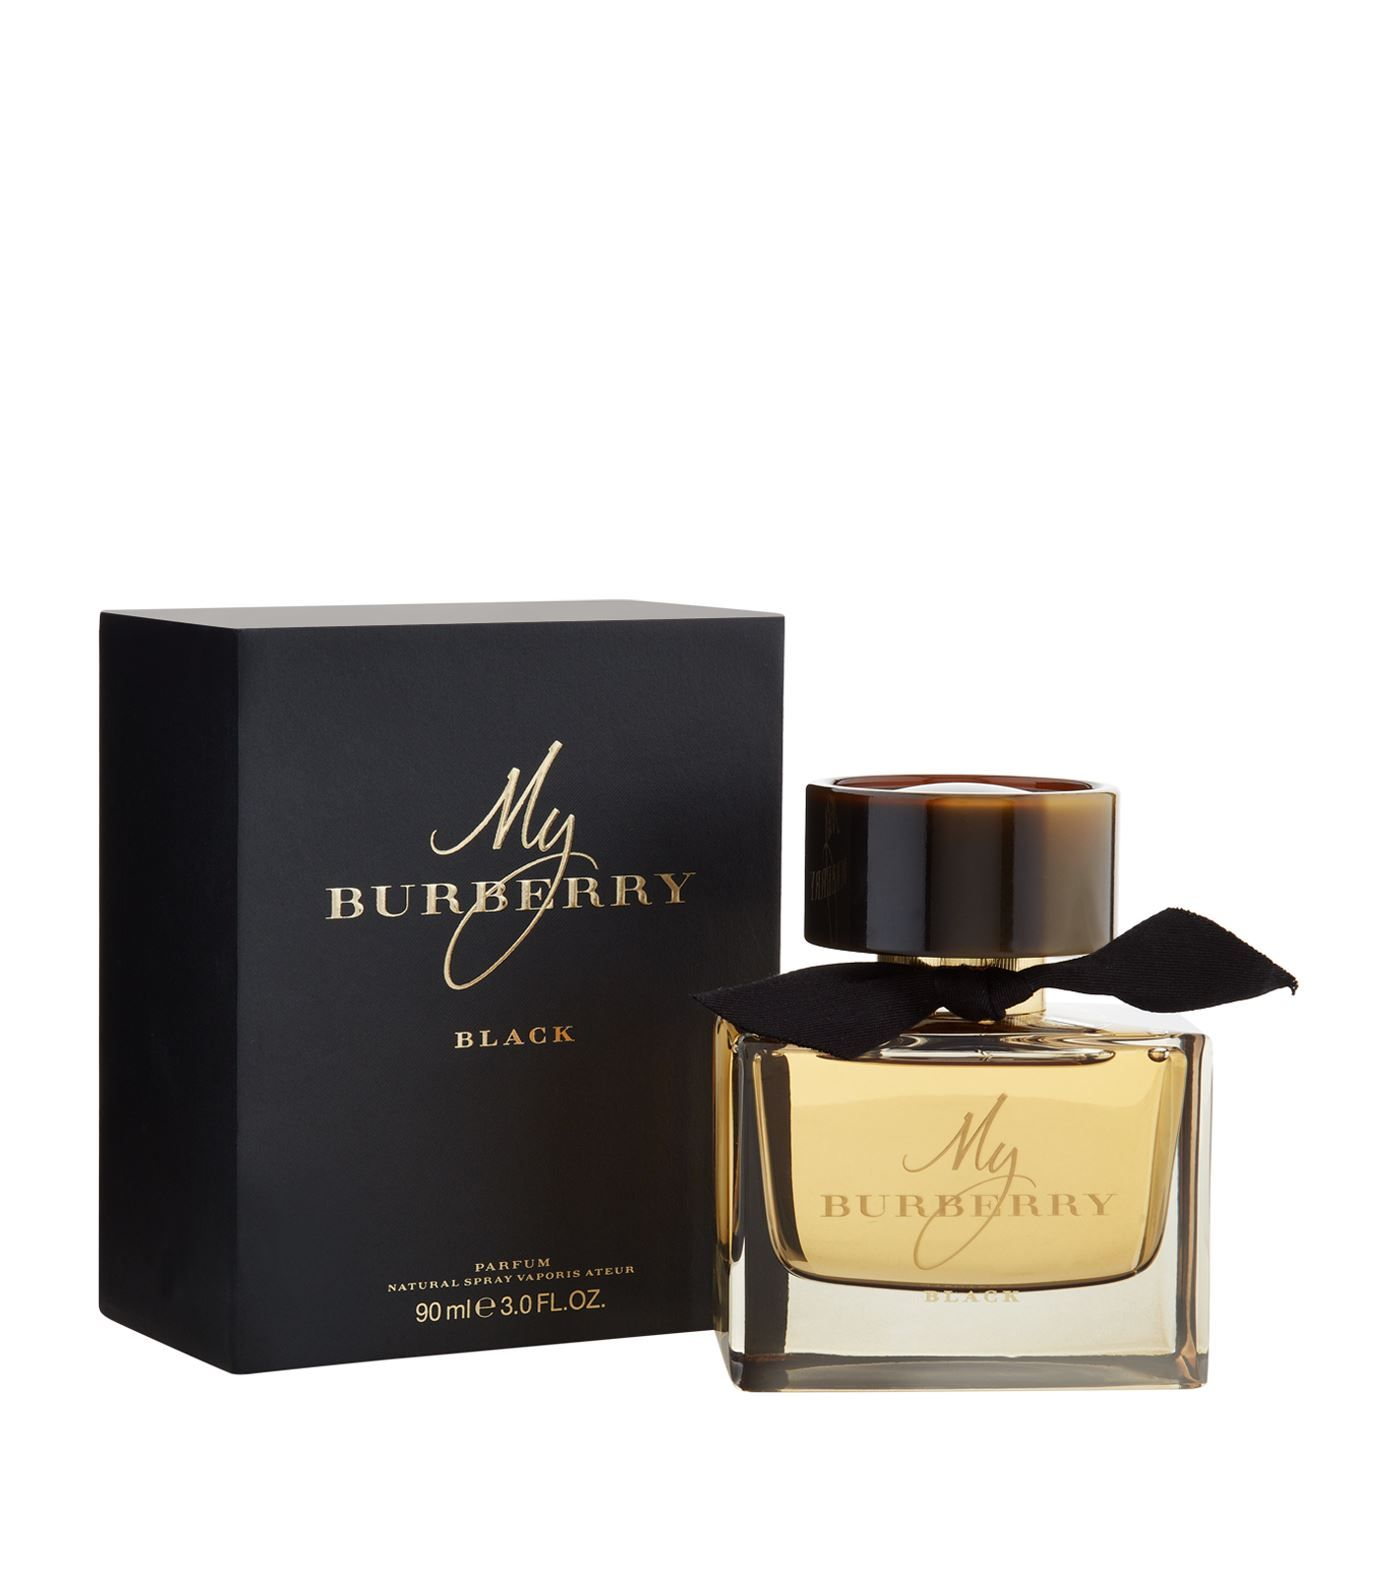 burberry my burberry black limited edition parfum 90ml gifts for her. Black Bedroom Furniture Sets. Home Design Ideas